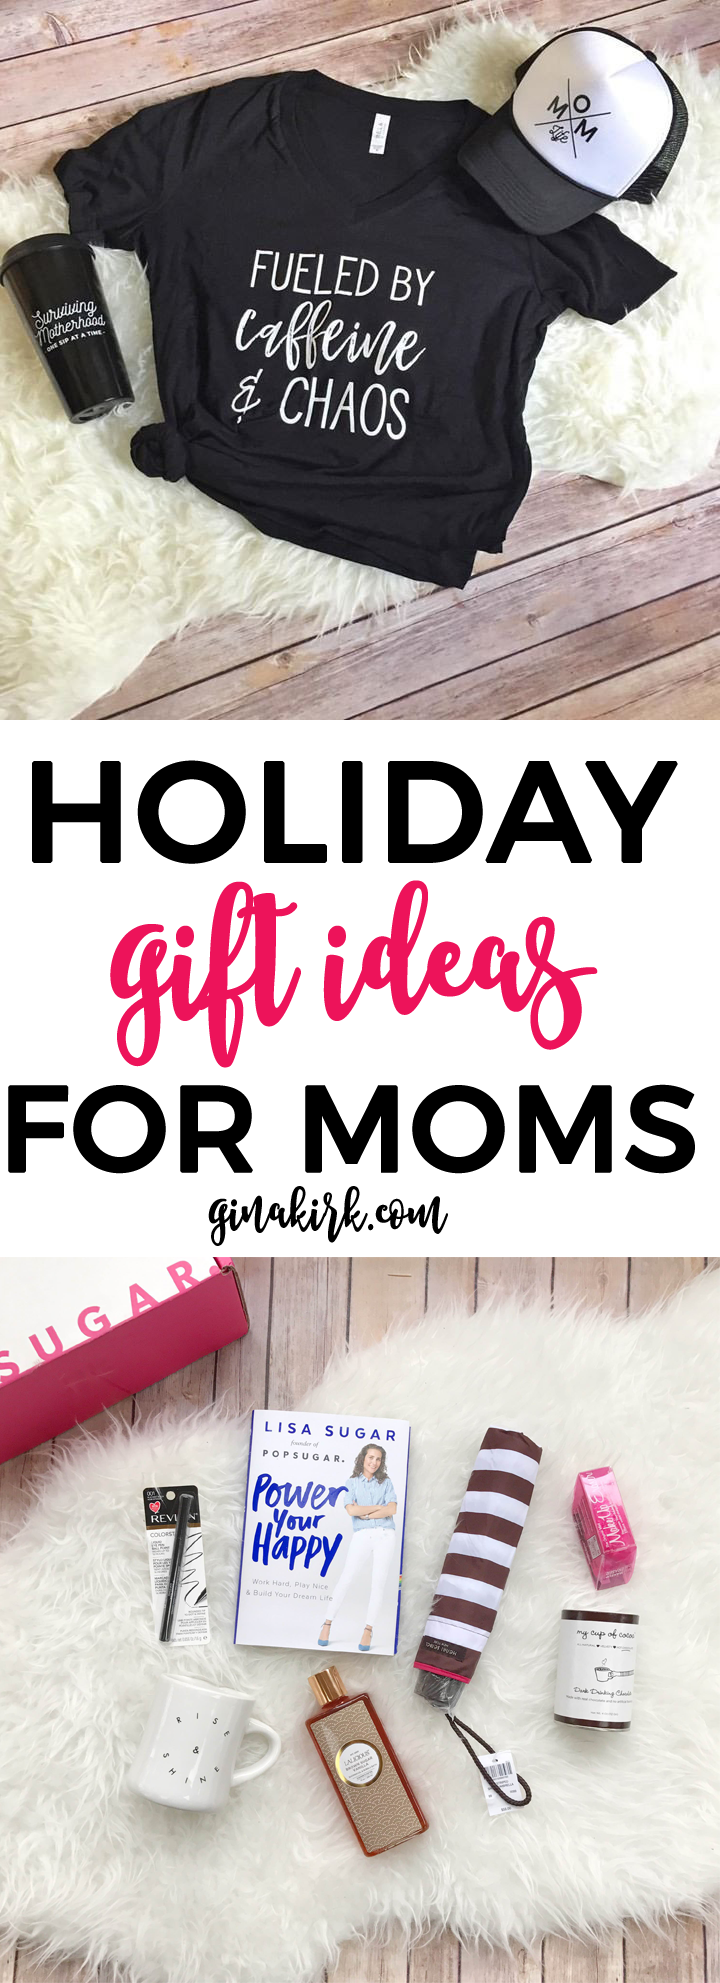 Christmas gift ideas for new mom